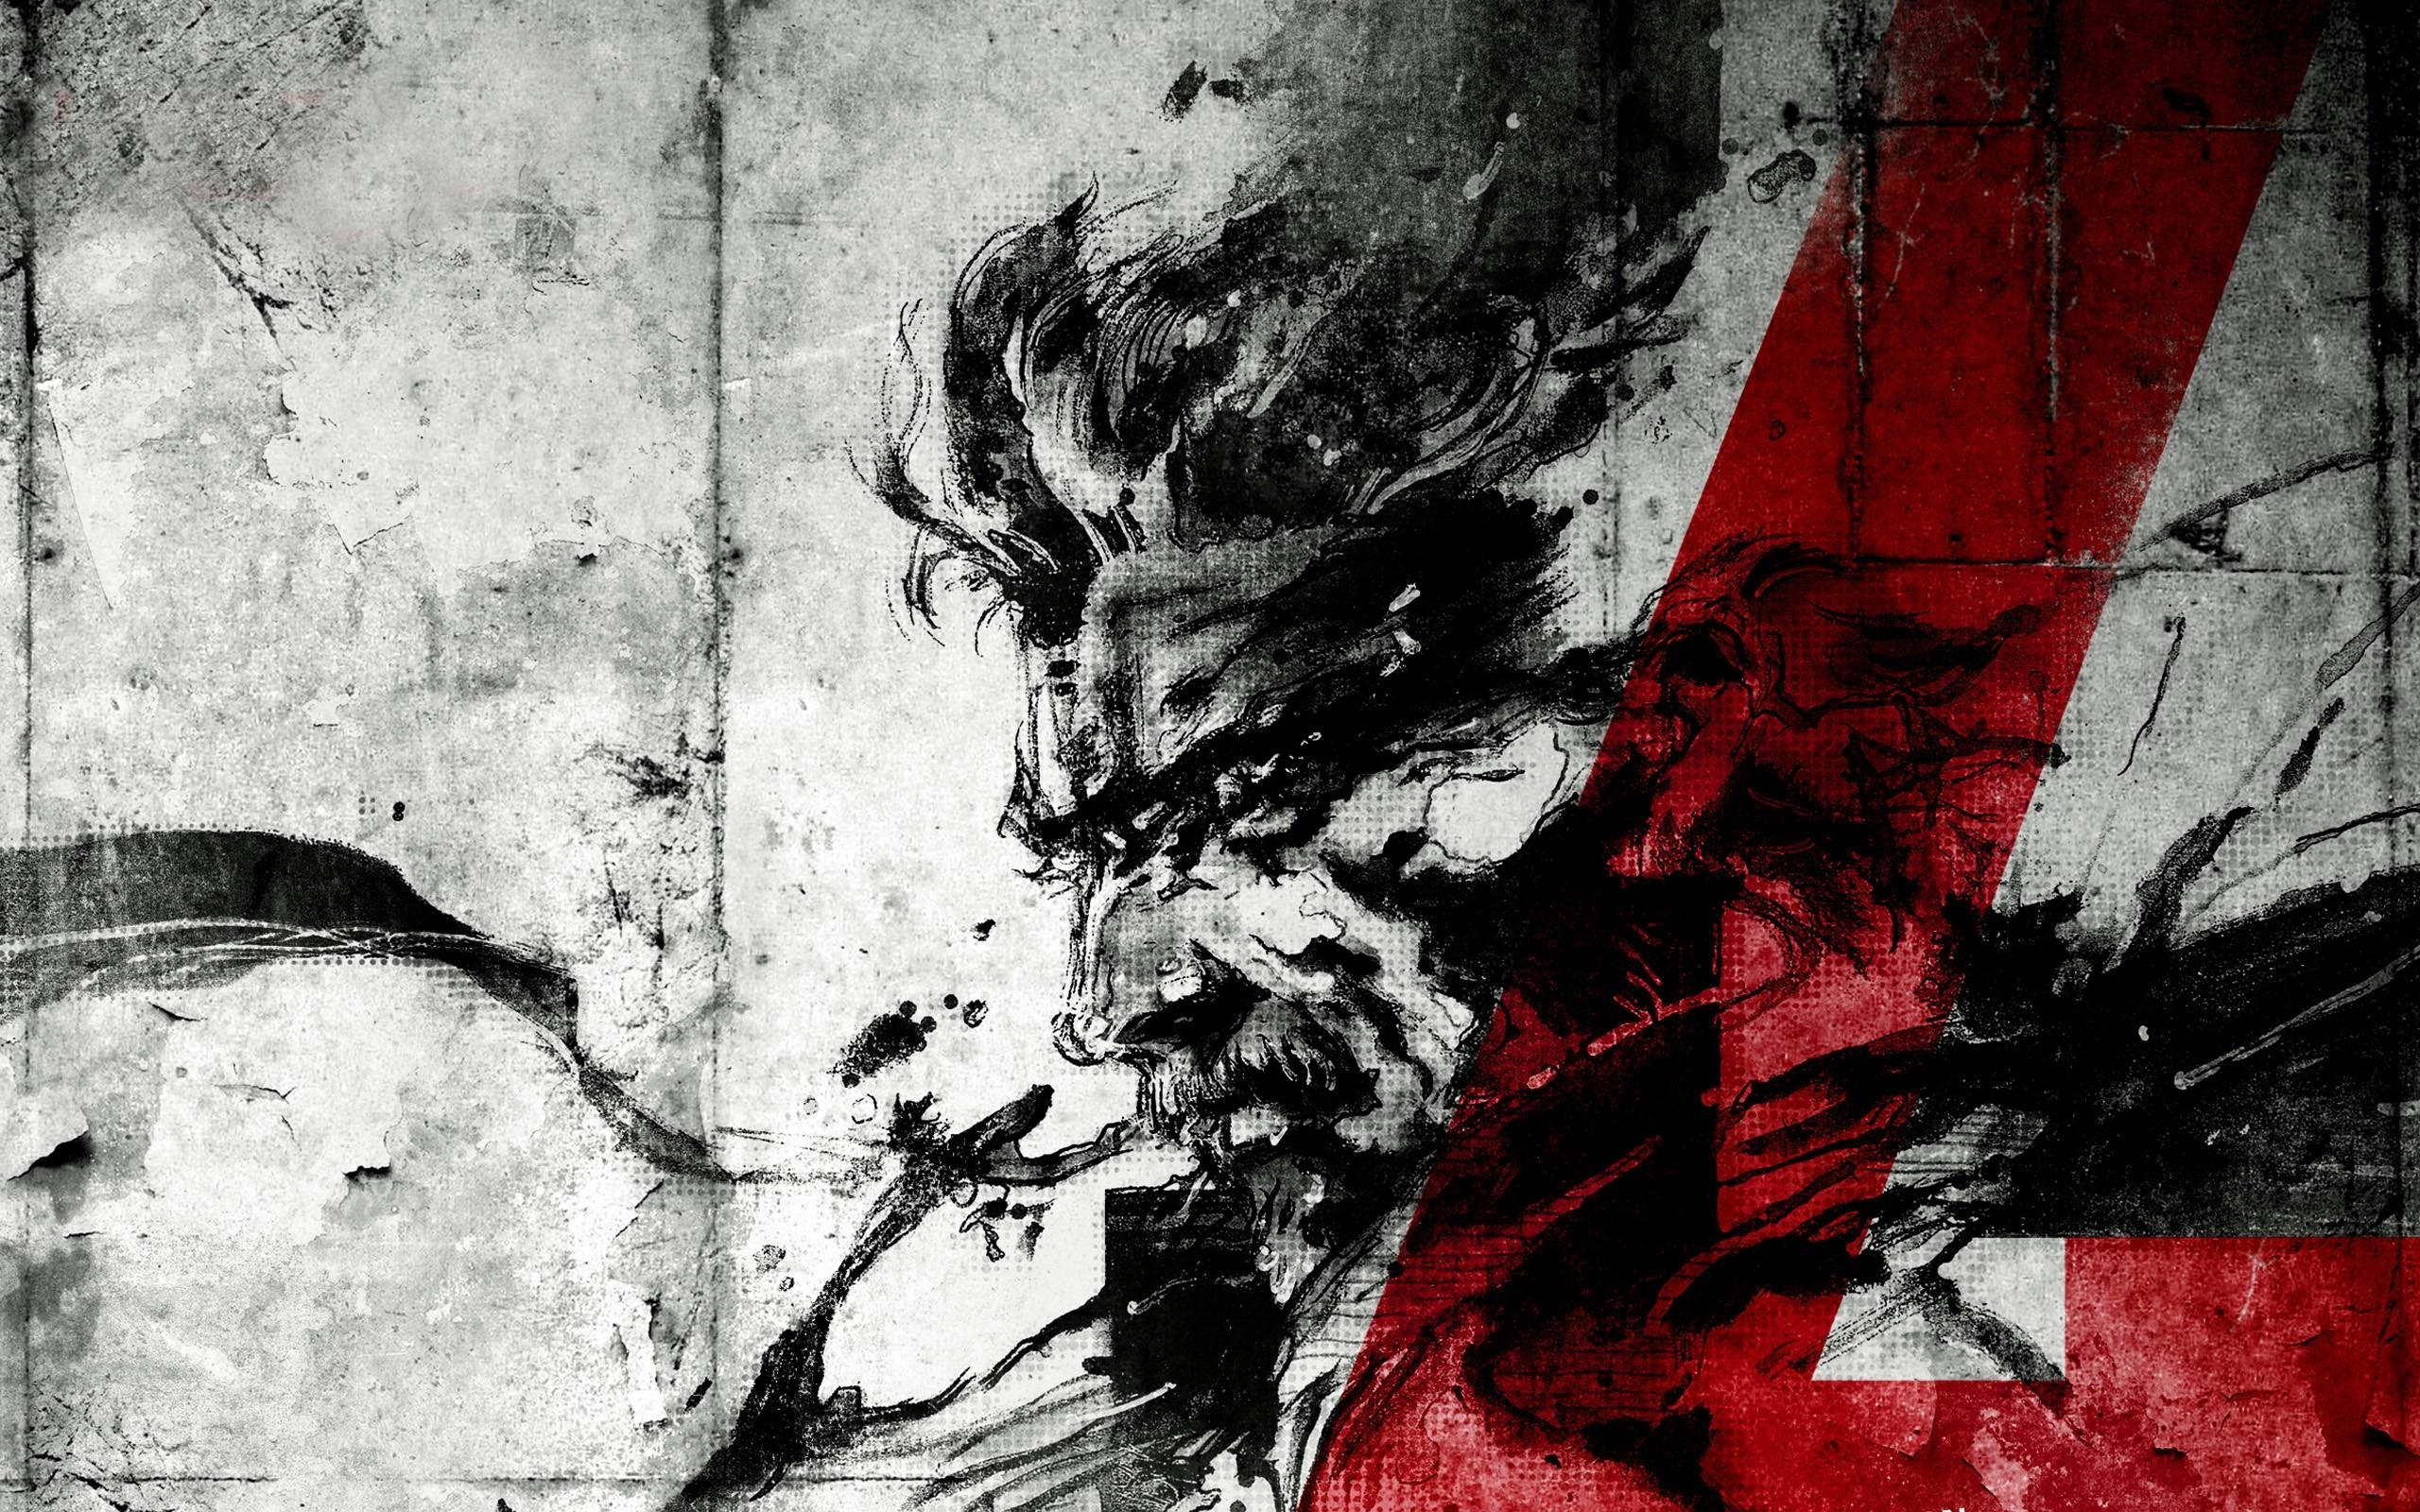 metal gear solid wallpapers - wallpaper cave